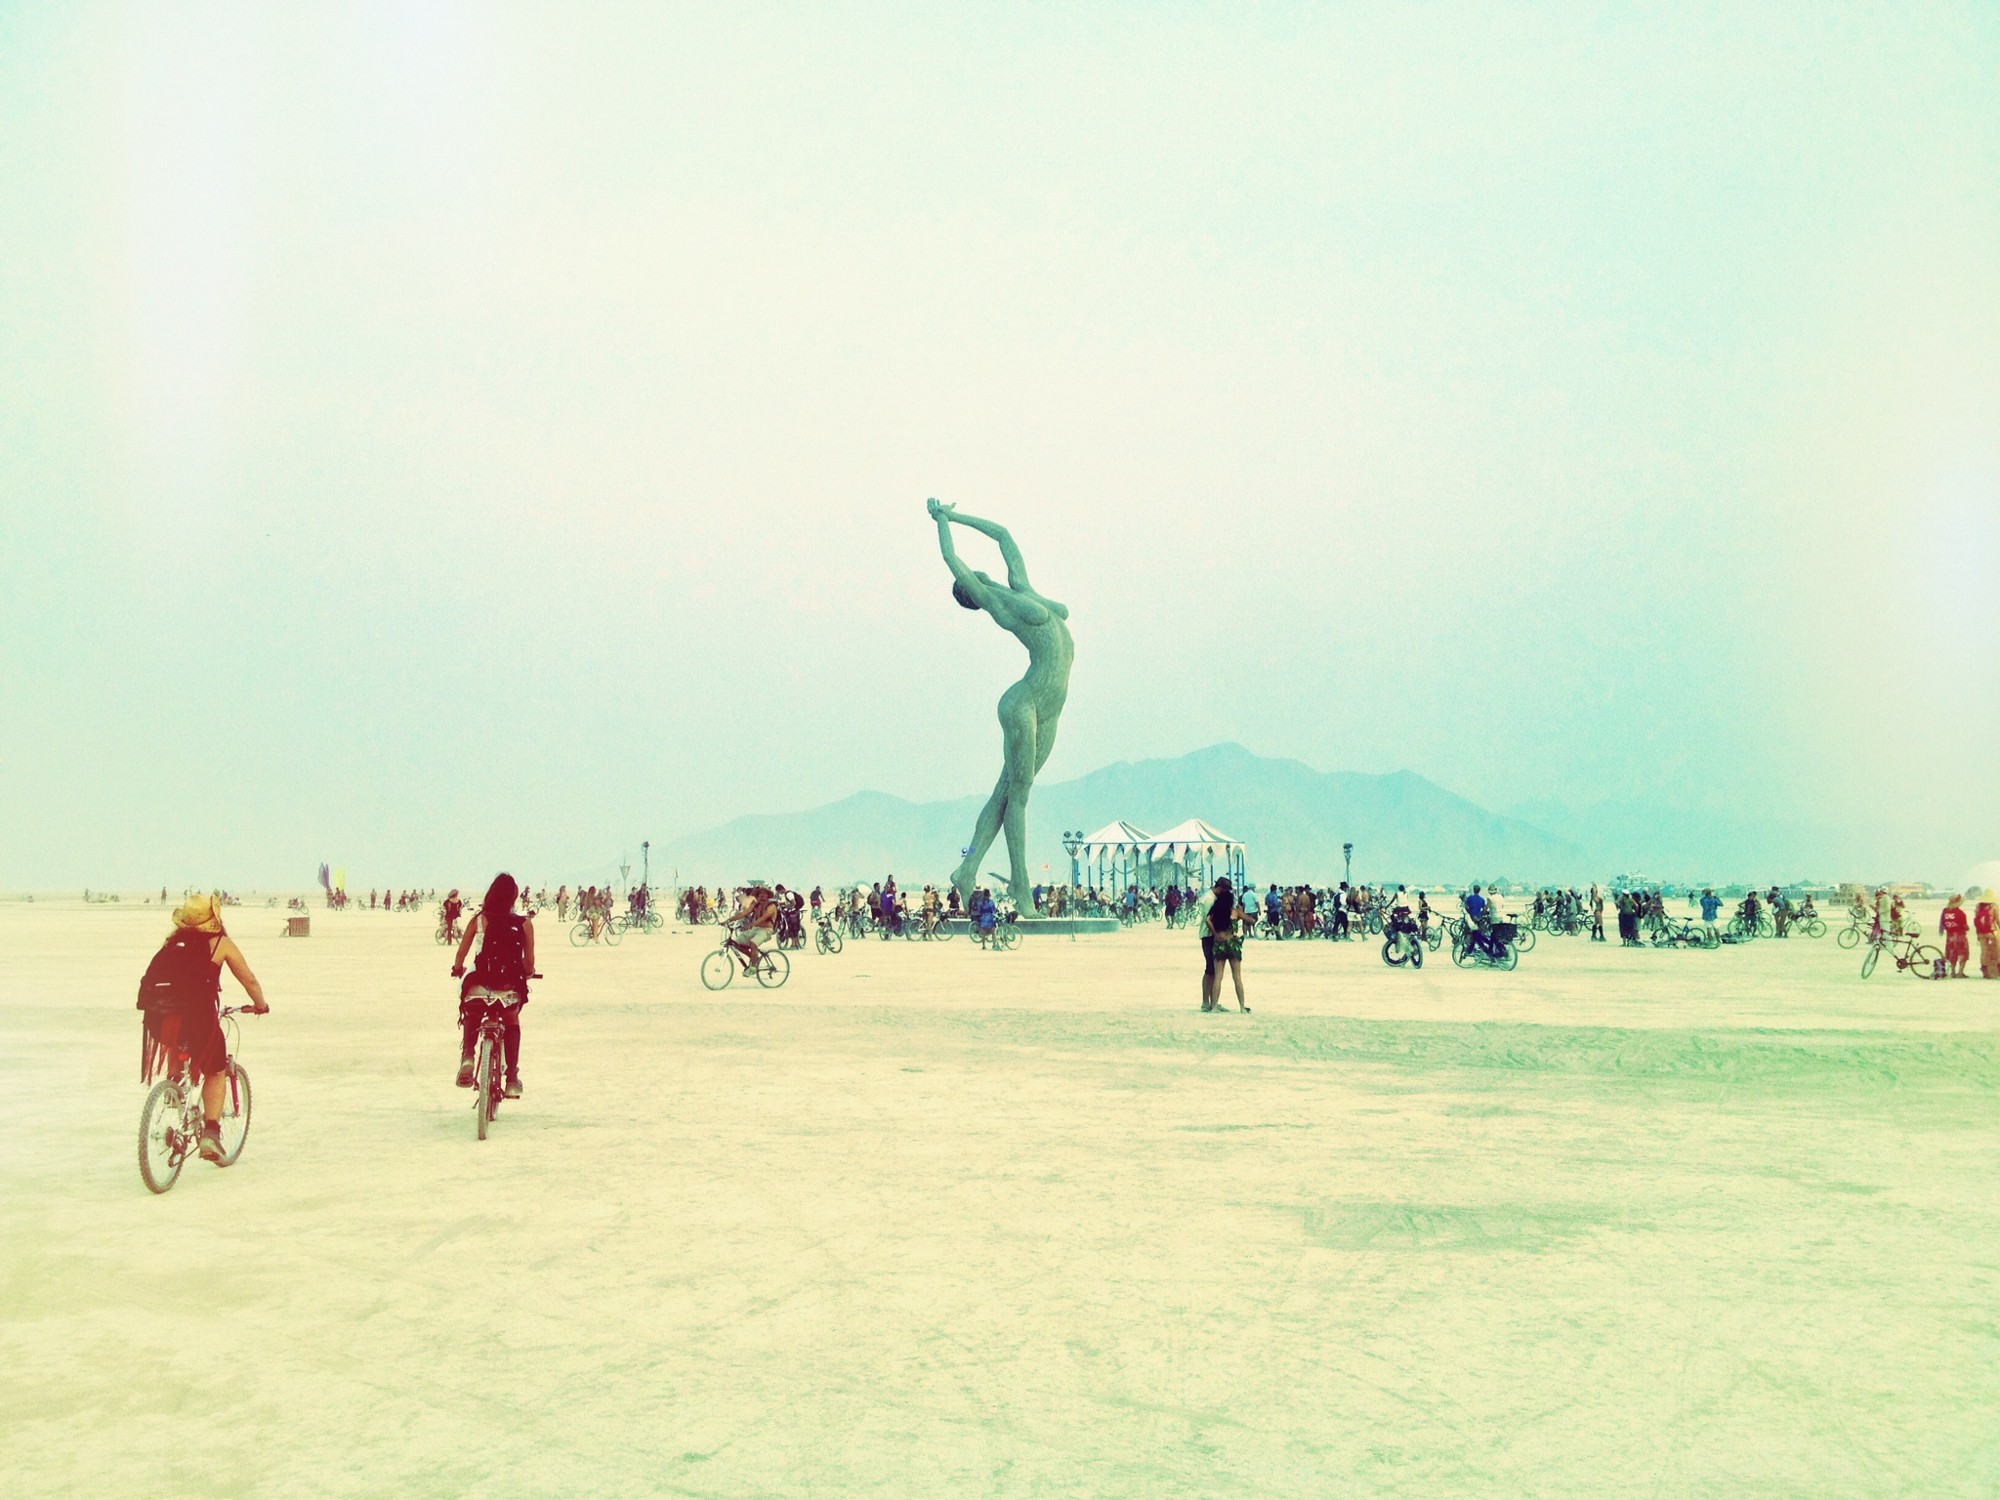 Female Body Art Installment at Burning Man